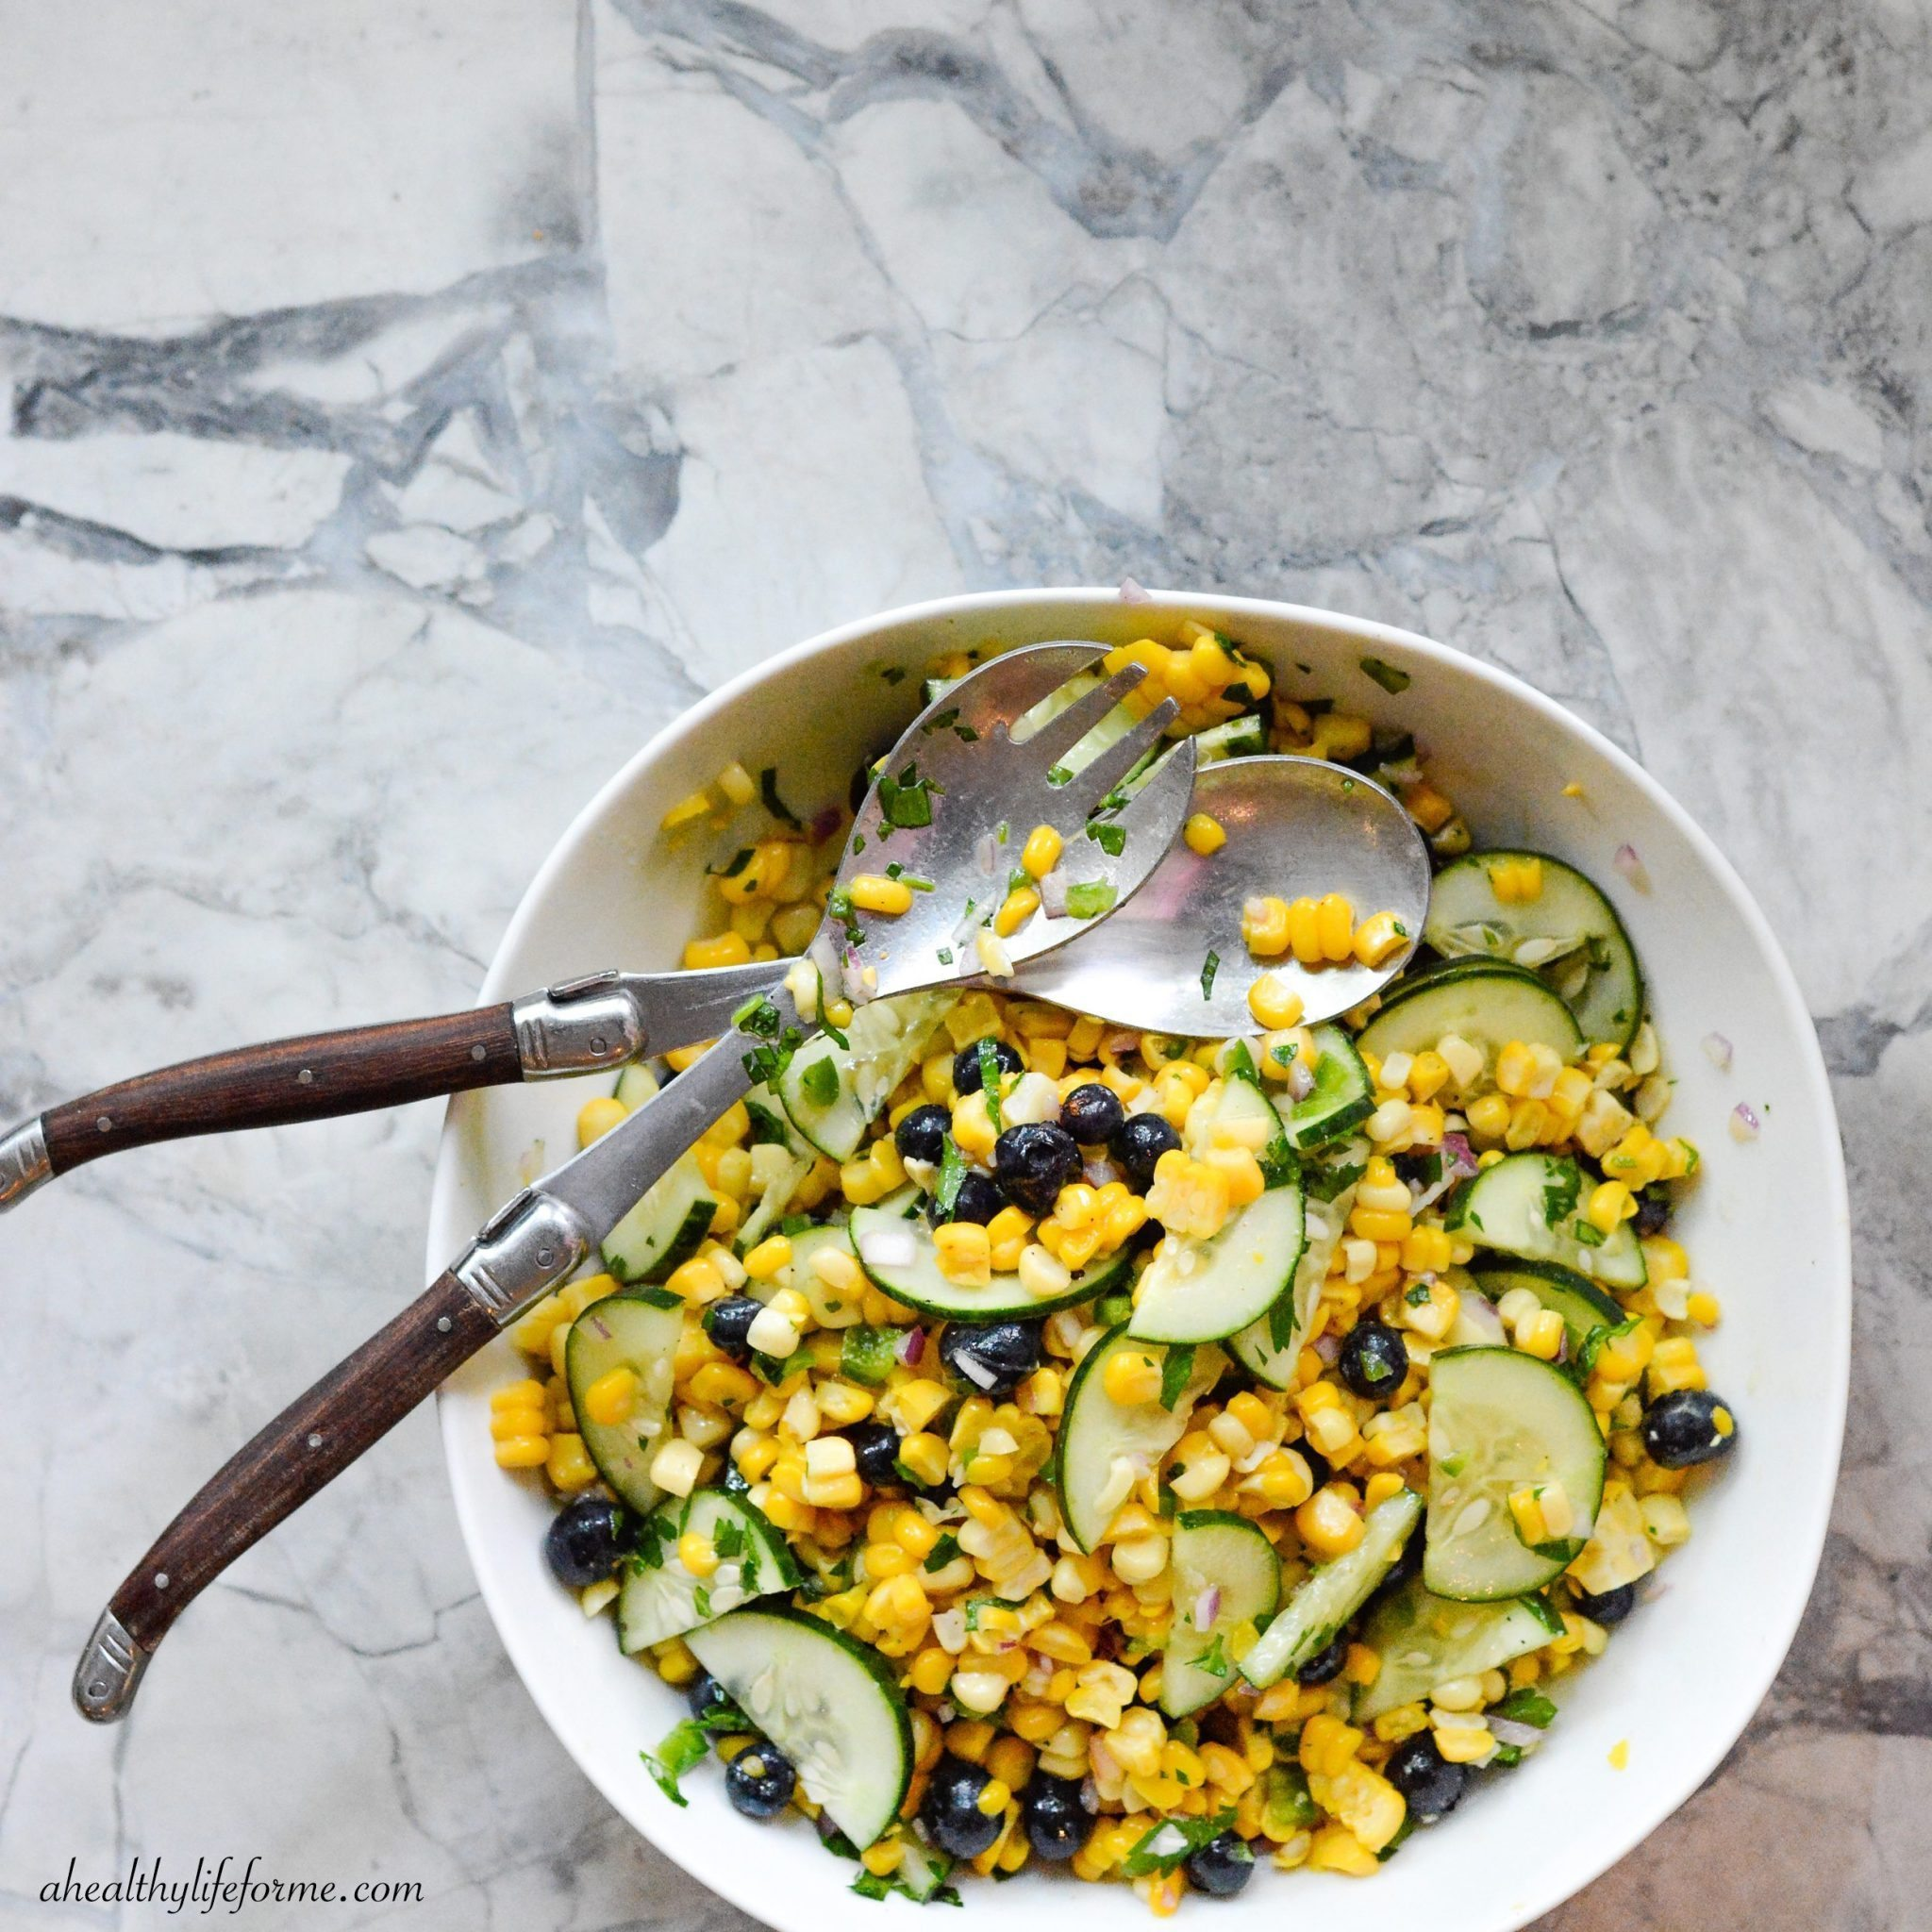 Blueberry Corn Salad is a simple healthy clean summer salad that is ...